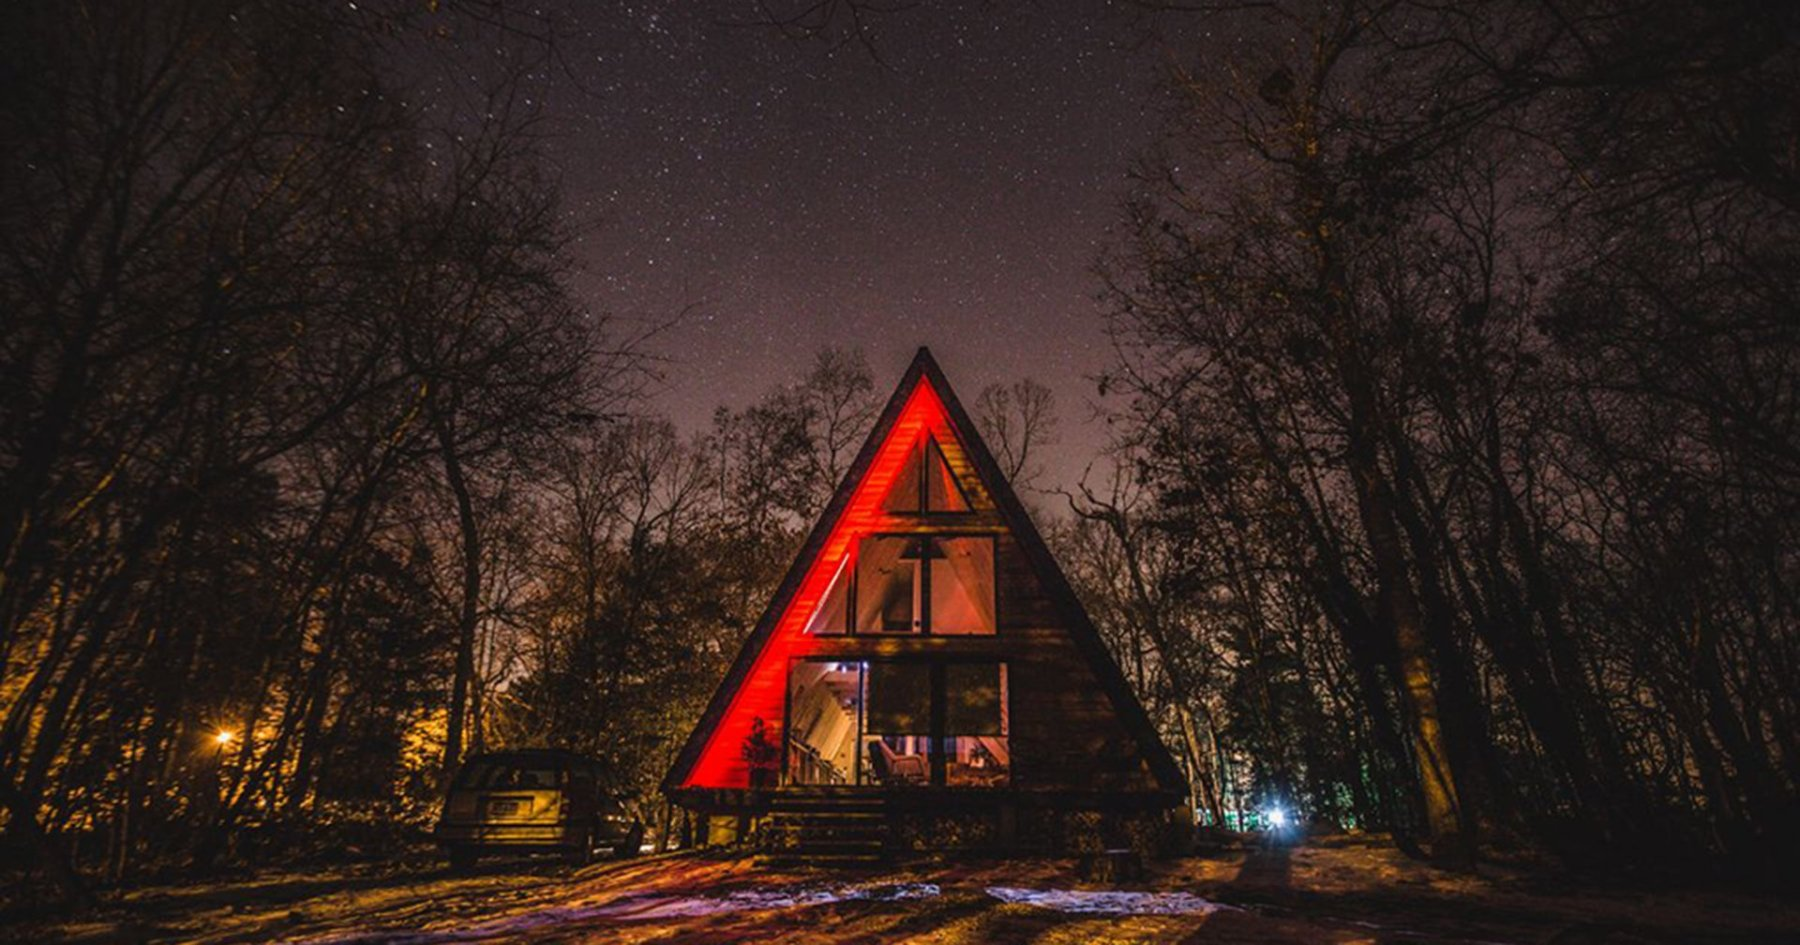 The 7 Glamping Experiences Every New Yorker Should Know